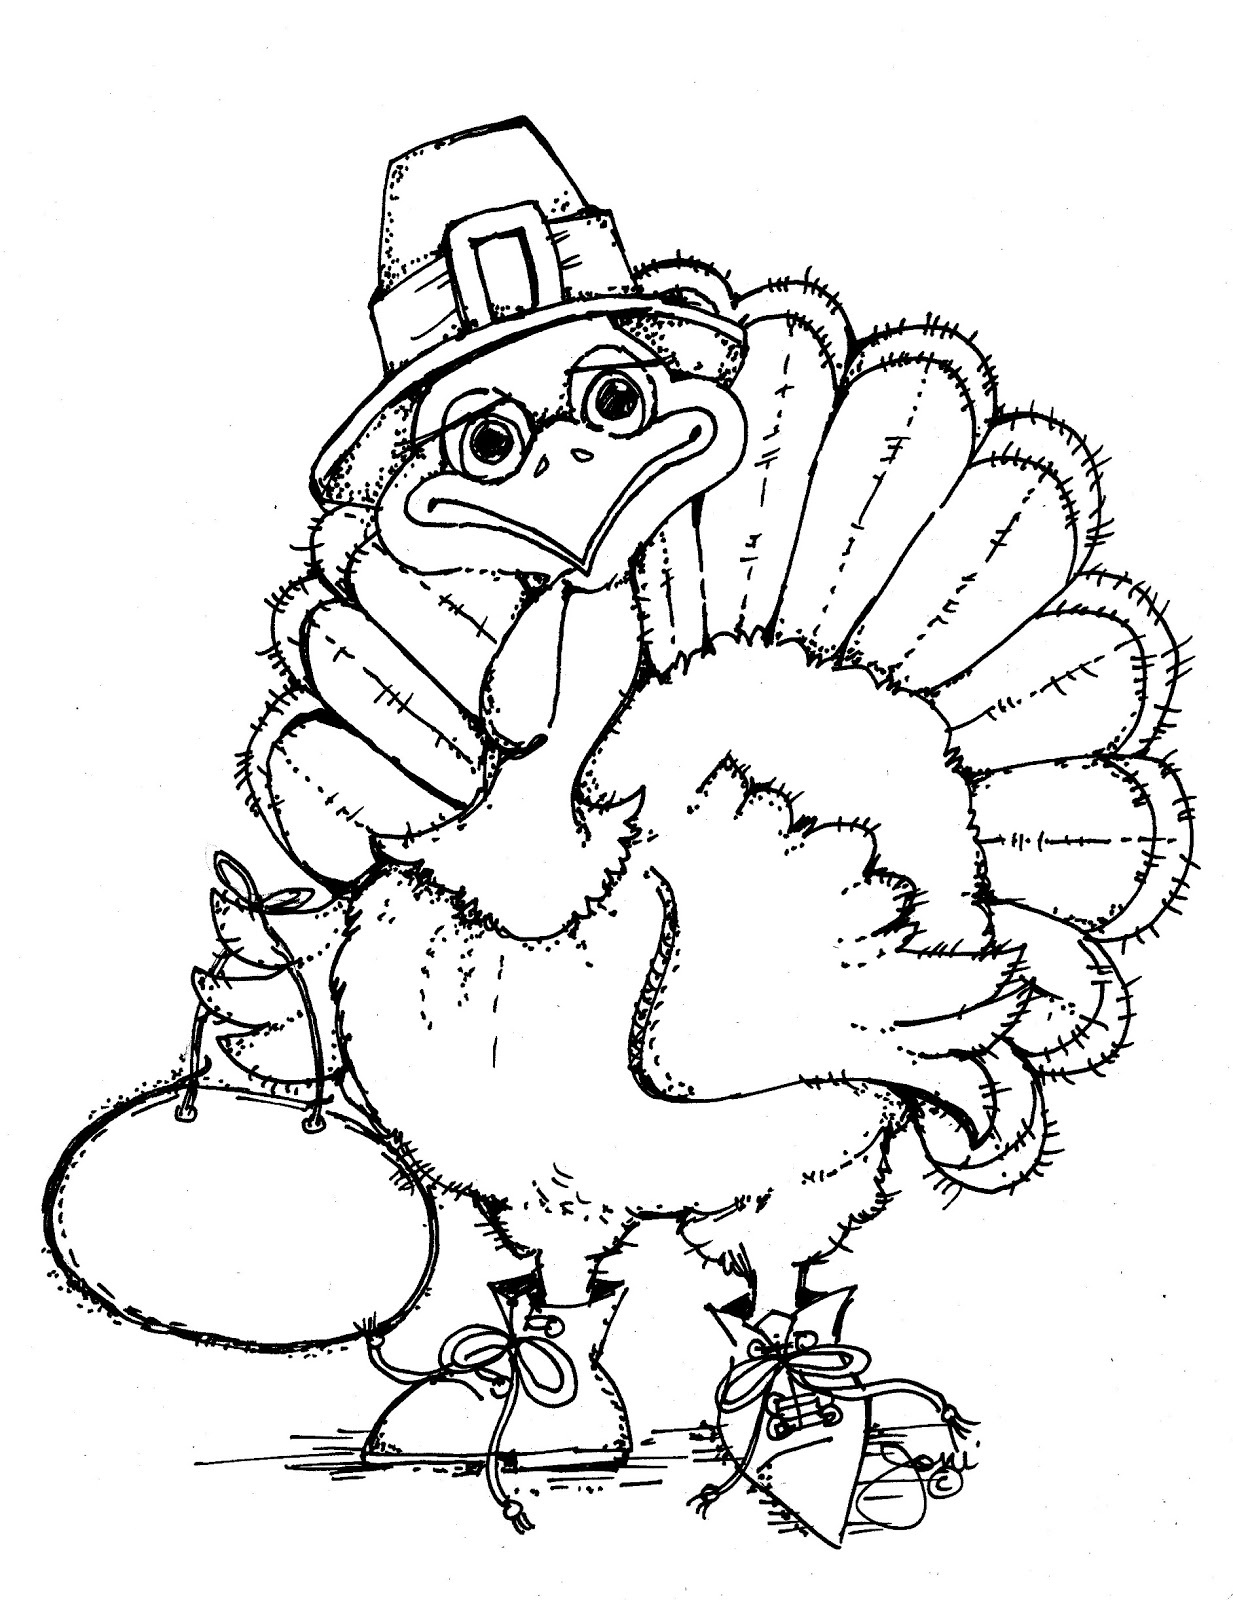 Free Printable Turkey Coloring Pages For Kids - Coloring Pages | 1600x1233